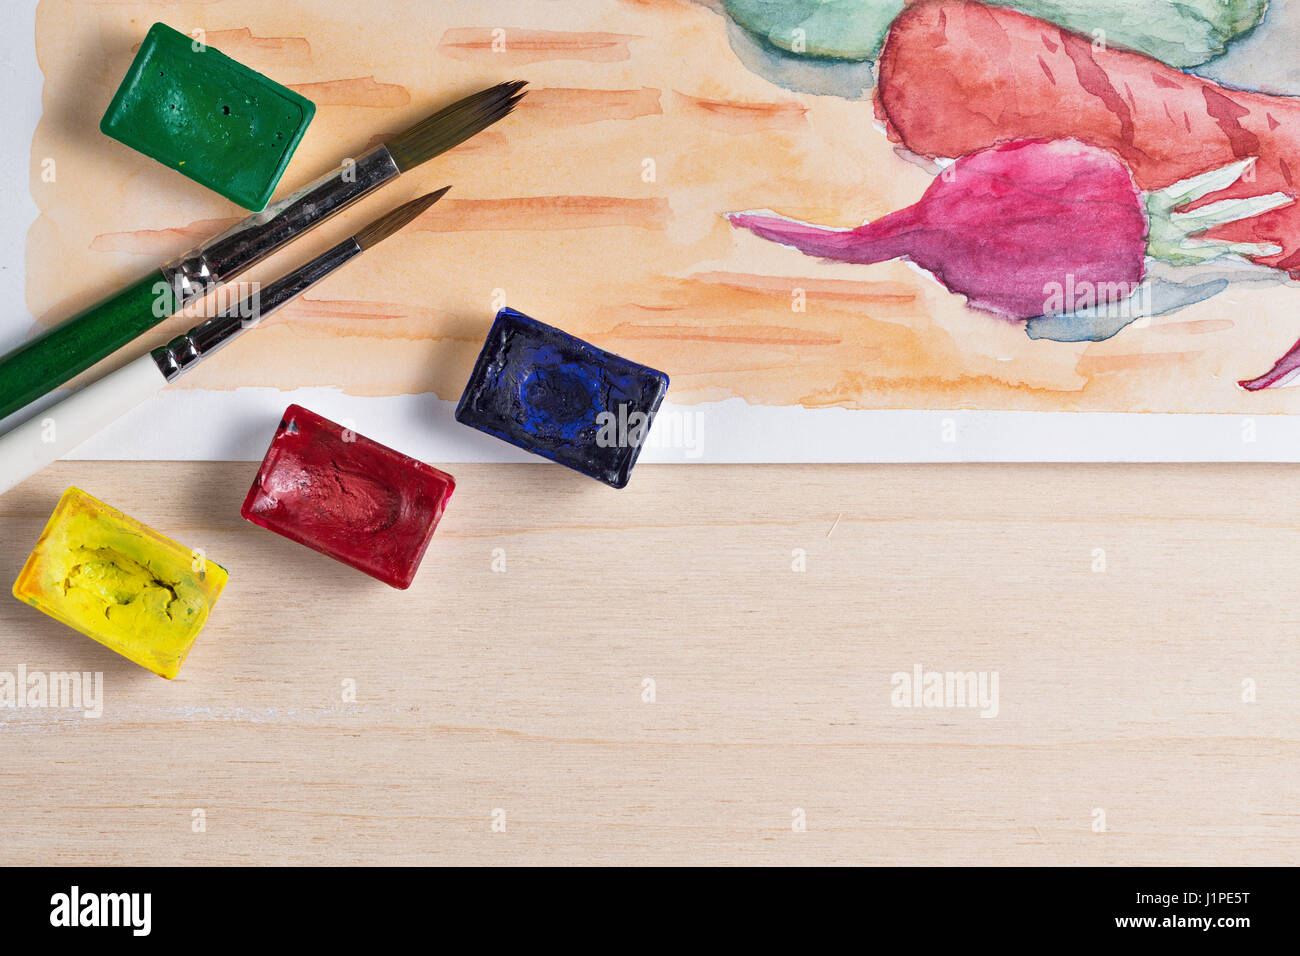 still life watercolor paint vegetables on the kitchen table brush J1PE5T